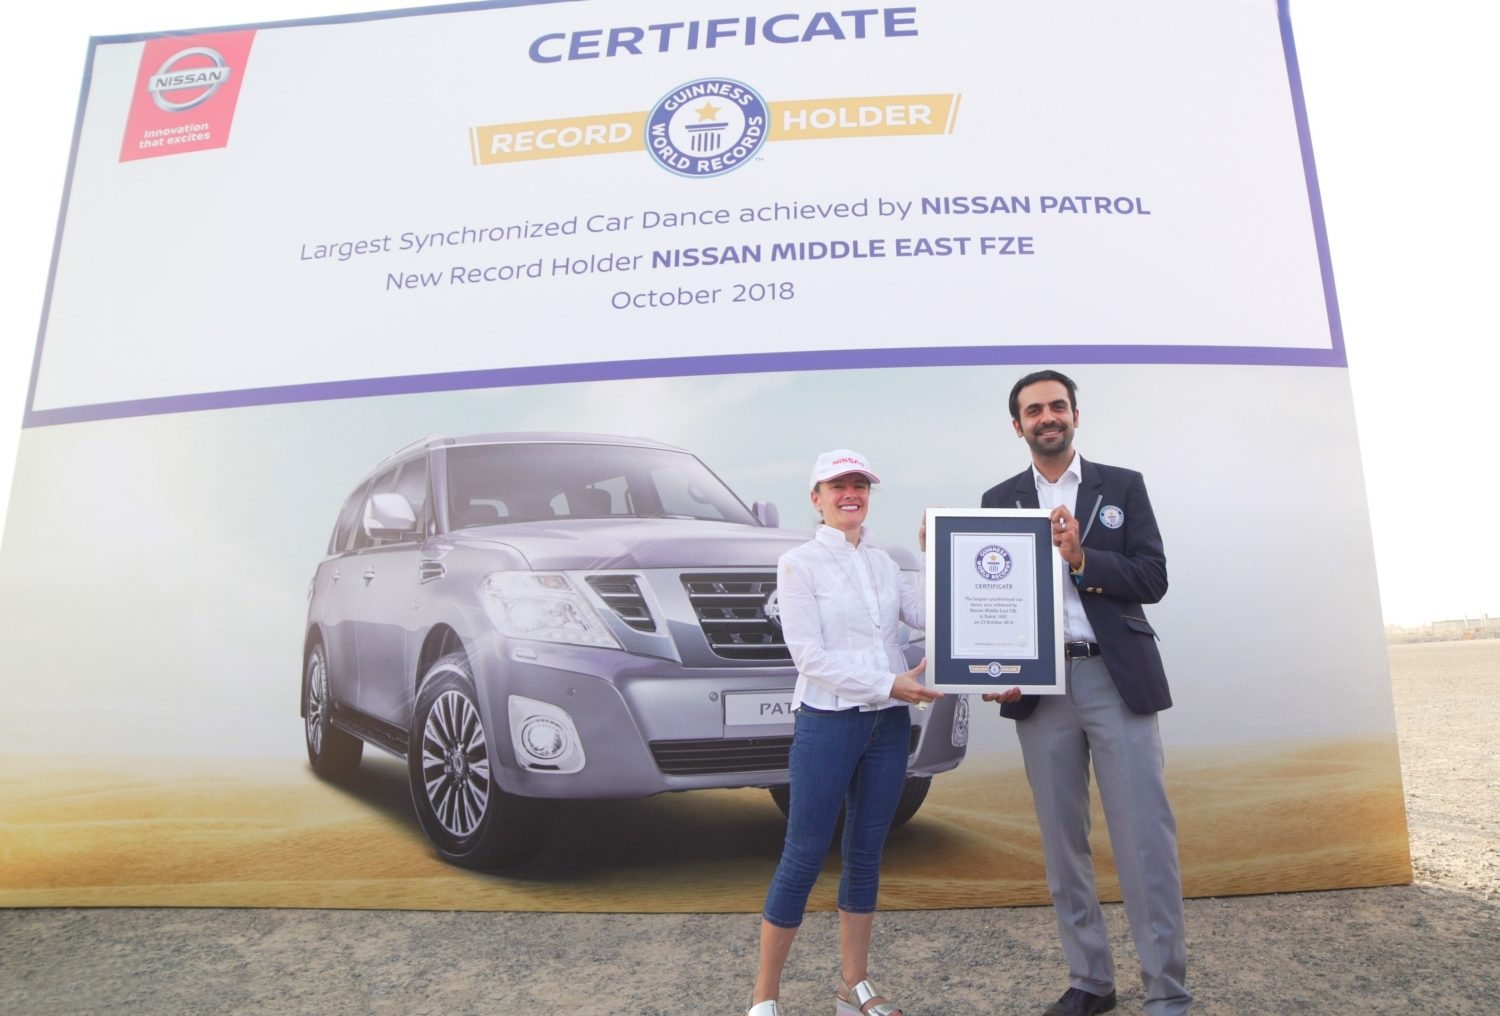 Nissan Patrol Breaks GUINNESS WORLD RECORDS title for Largest Synchronised Car Dance